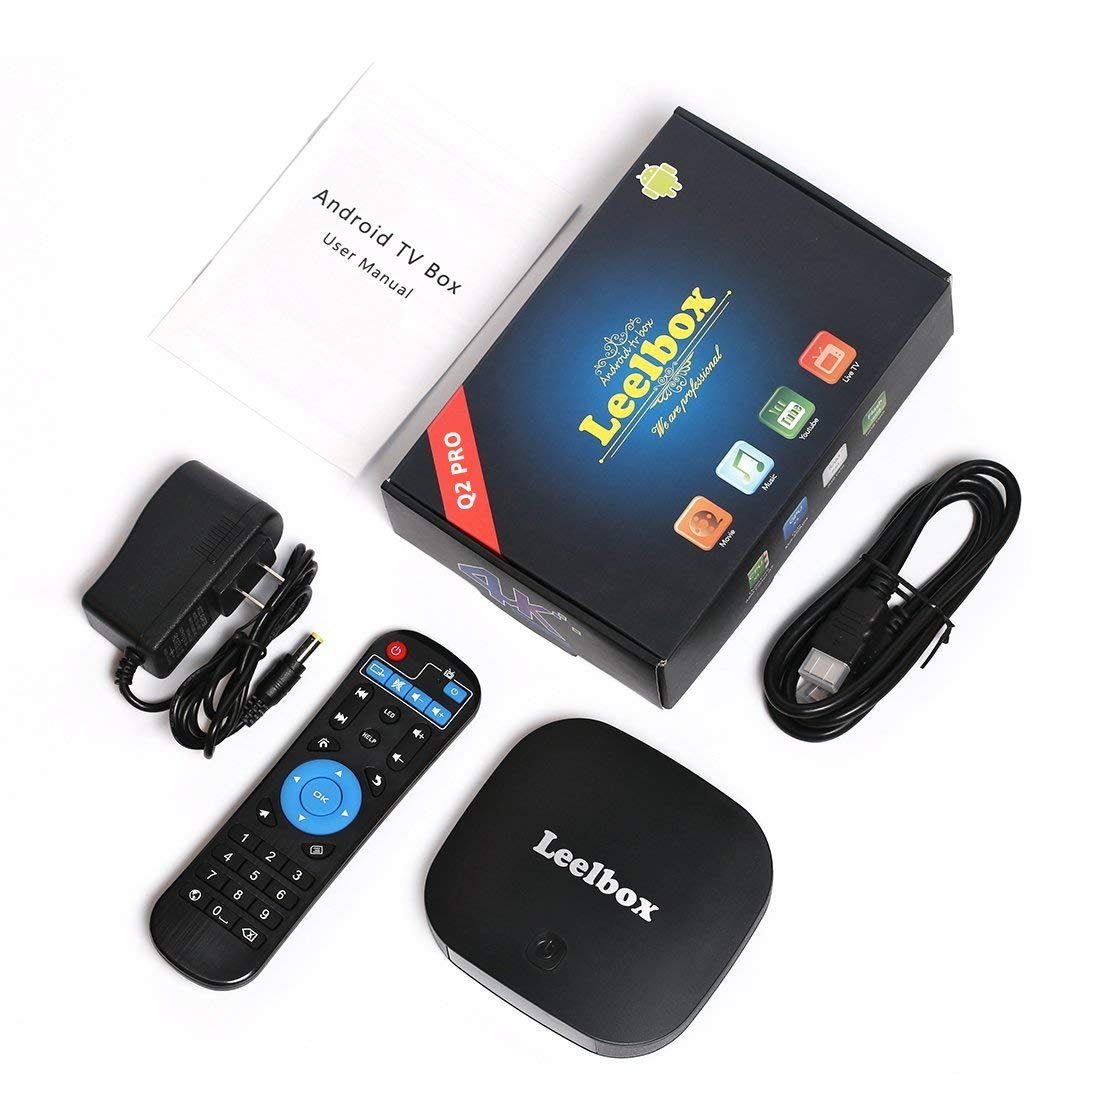 [2018 Edition] Leelbox Q2 pro Android 7.1 TV Box 2GB+16GB Dual-WiFi 2.4GHz/5GHz with BT 4.0 Supporting 4K (60Hz) Full HD by Leelbox (Image #9)